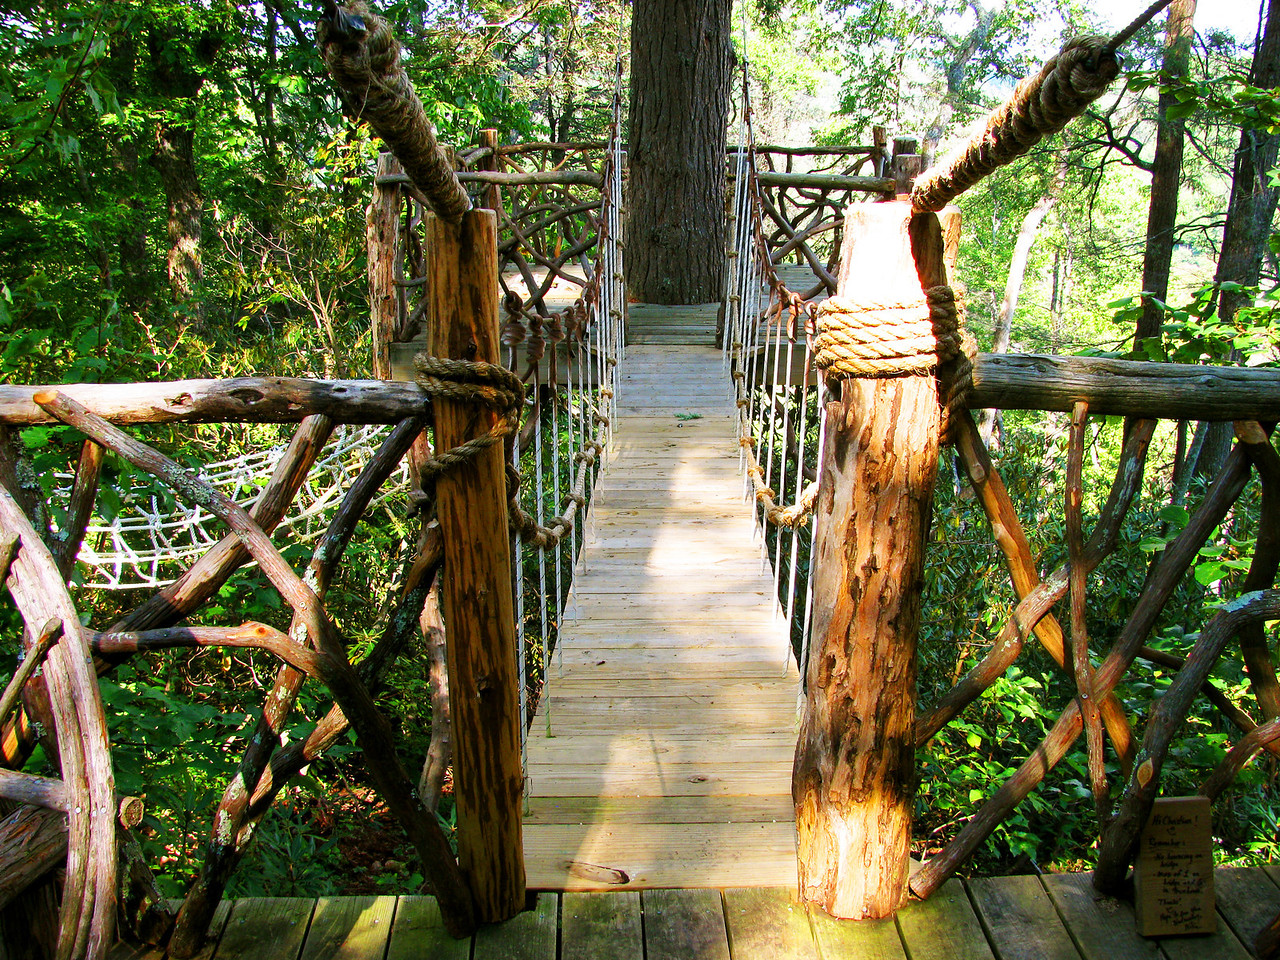 Bridge and treehouse